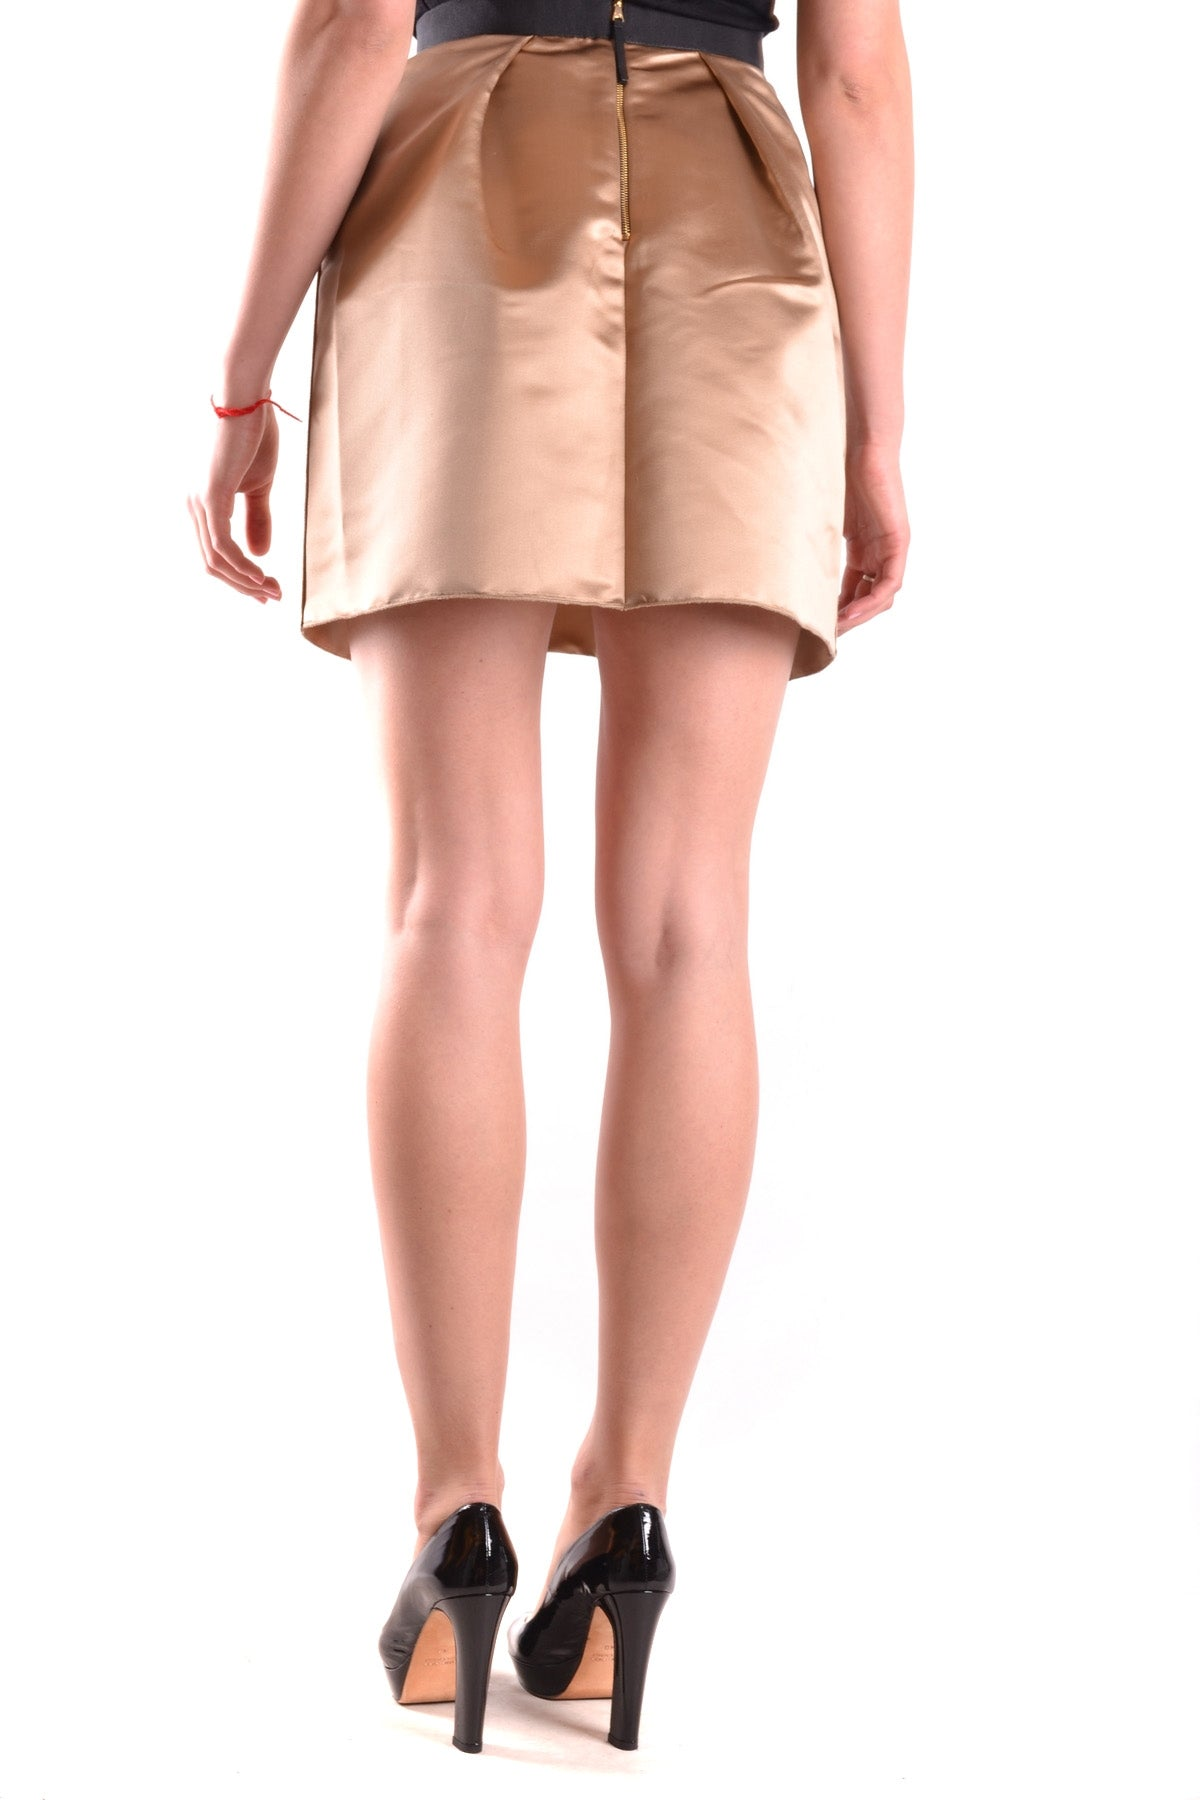 Skirt D&G Dolce & Gabbana-Skirts - WOMAN-Product Details Terms: New With LabelYear: 2017Main Color: GoldGender: WomanMade In: ItalySize: ItSeason: Spring / SummerClothing Type: SkirtComposition: Polyester 64%, Silk 36%-Keyomi-Sook